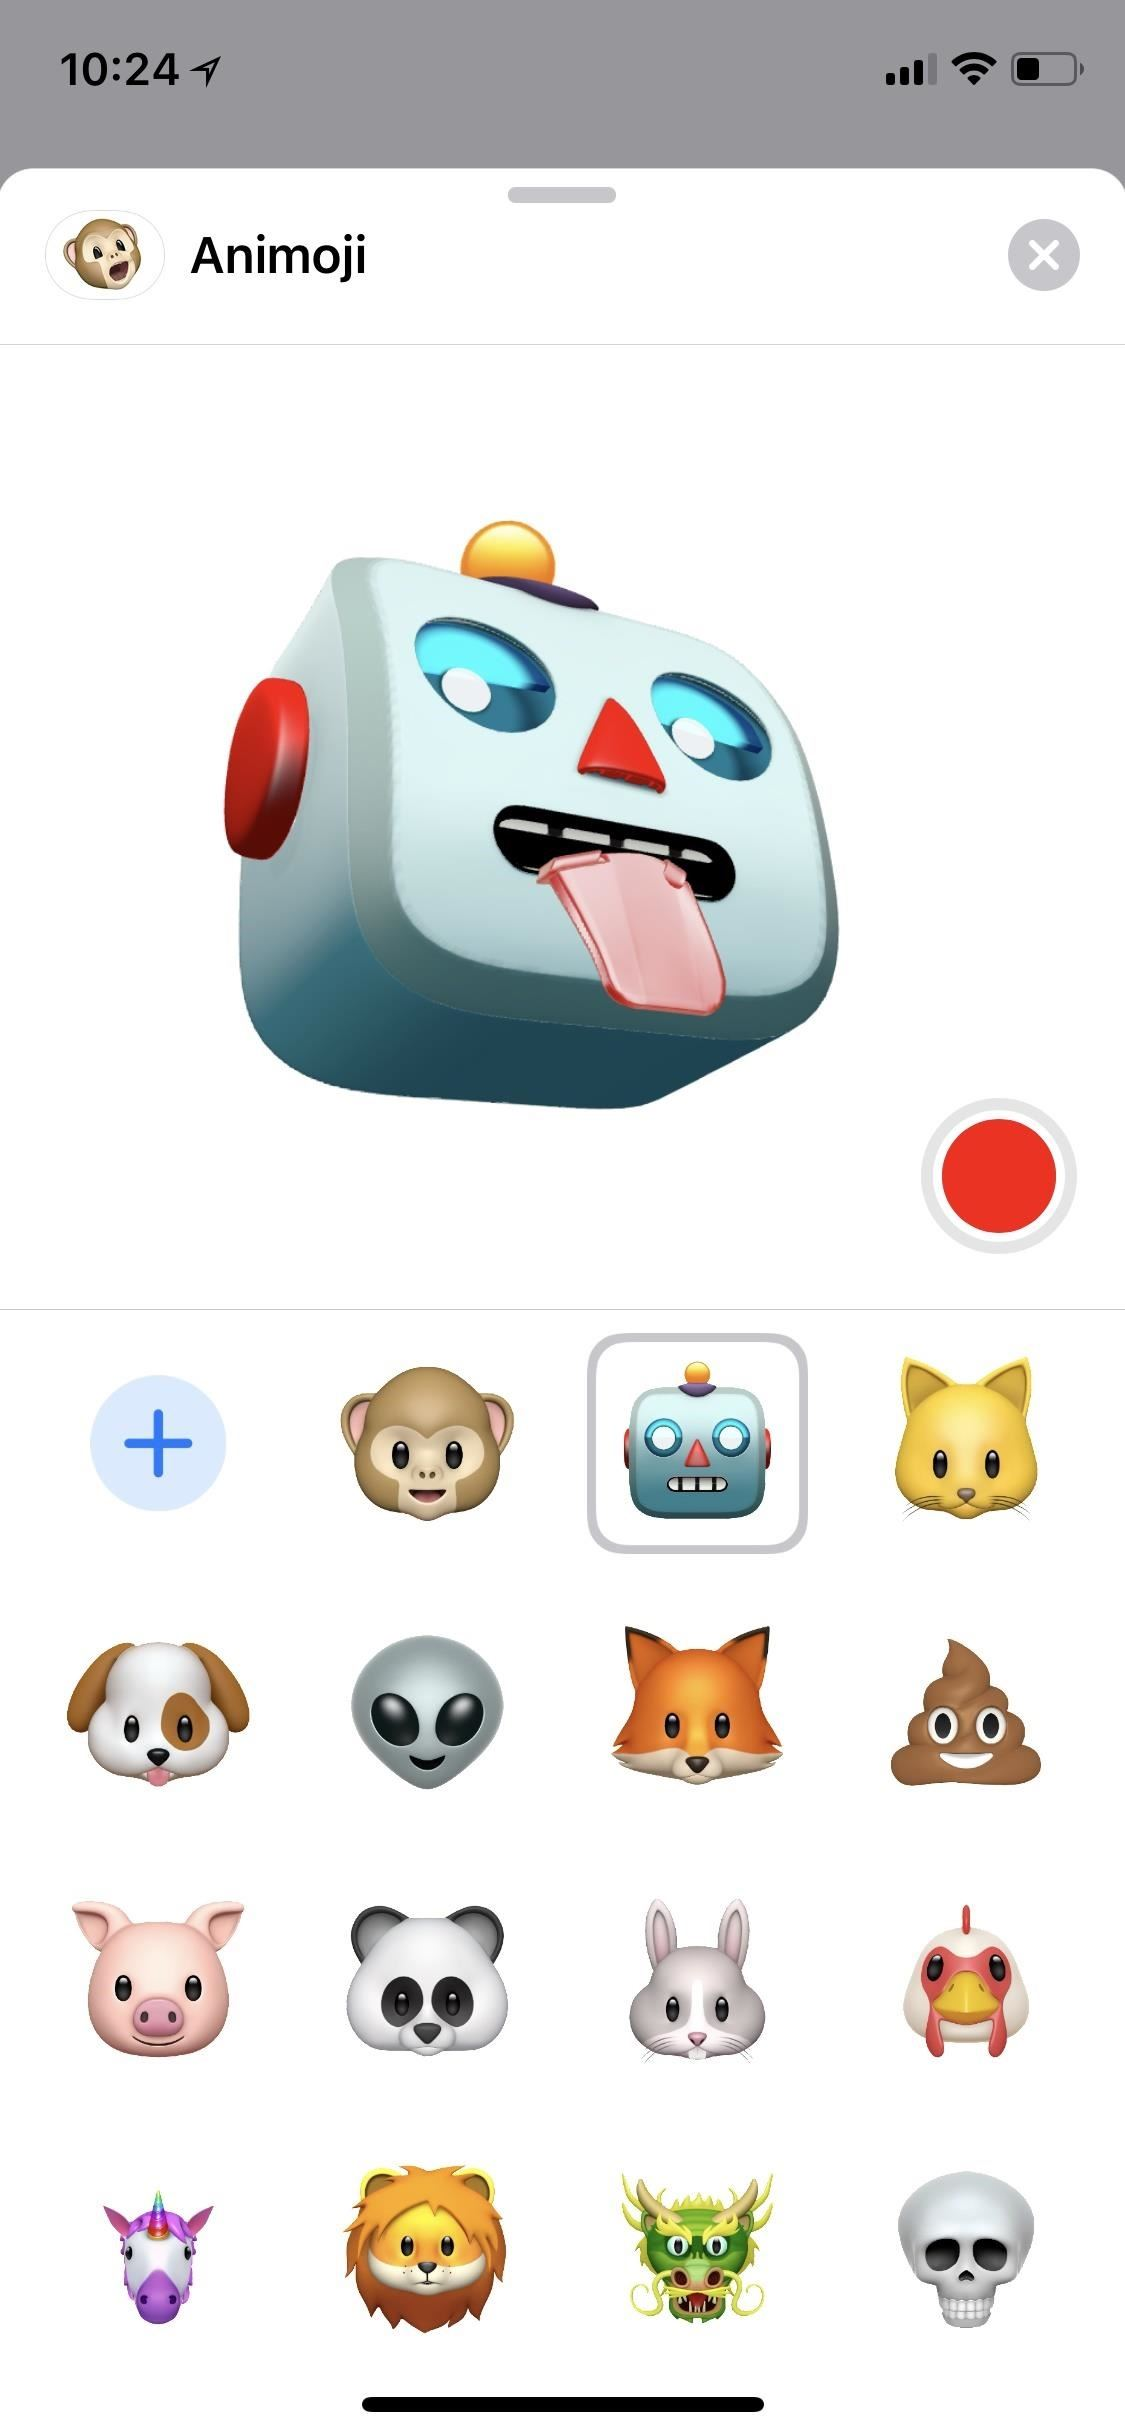 44 cool new iOS 12 features you do not know